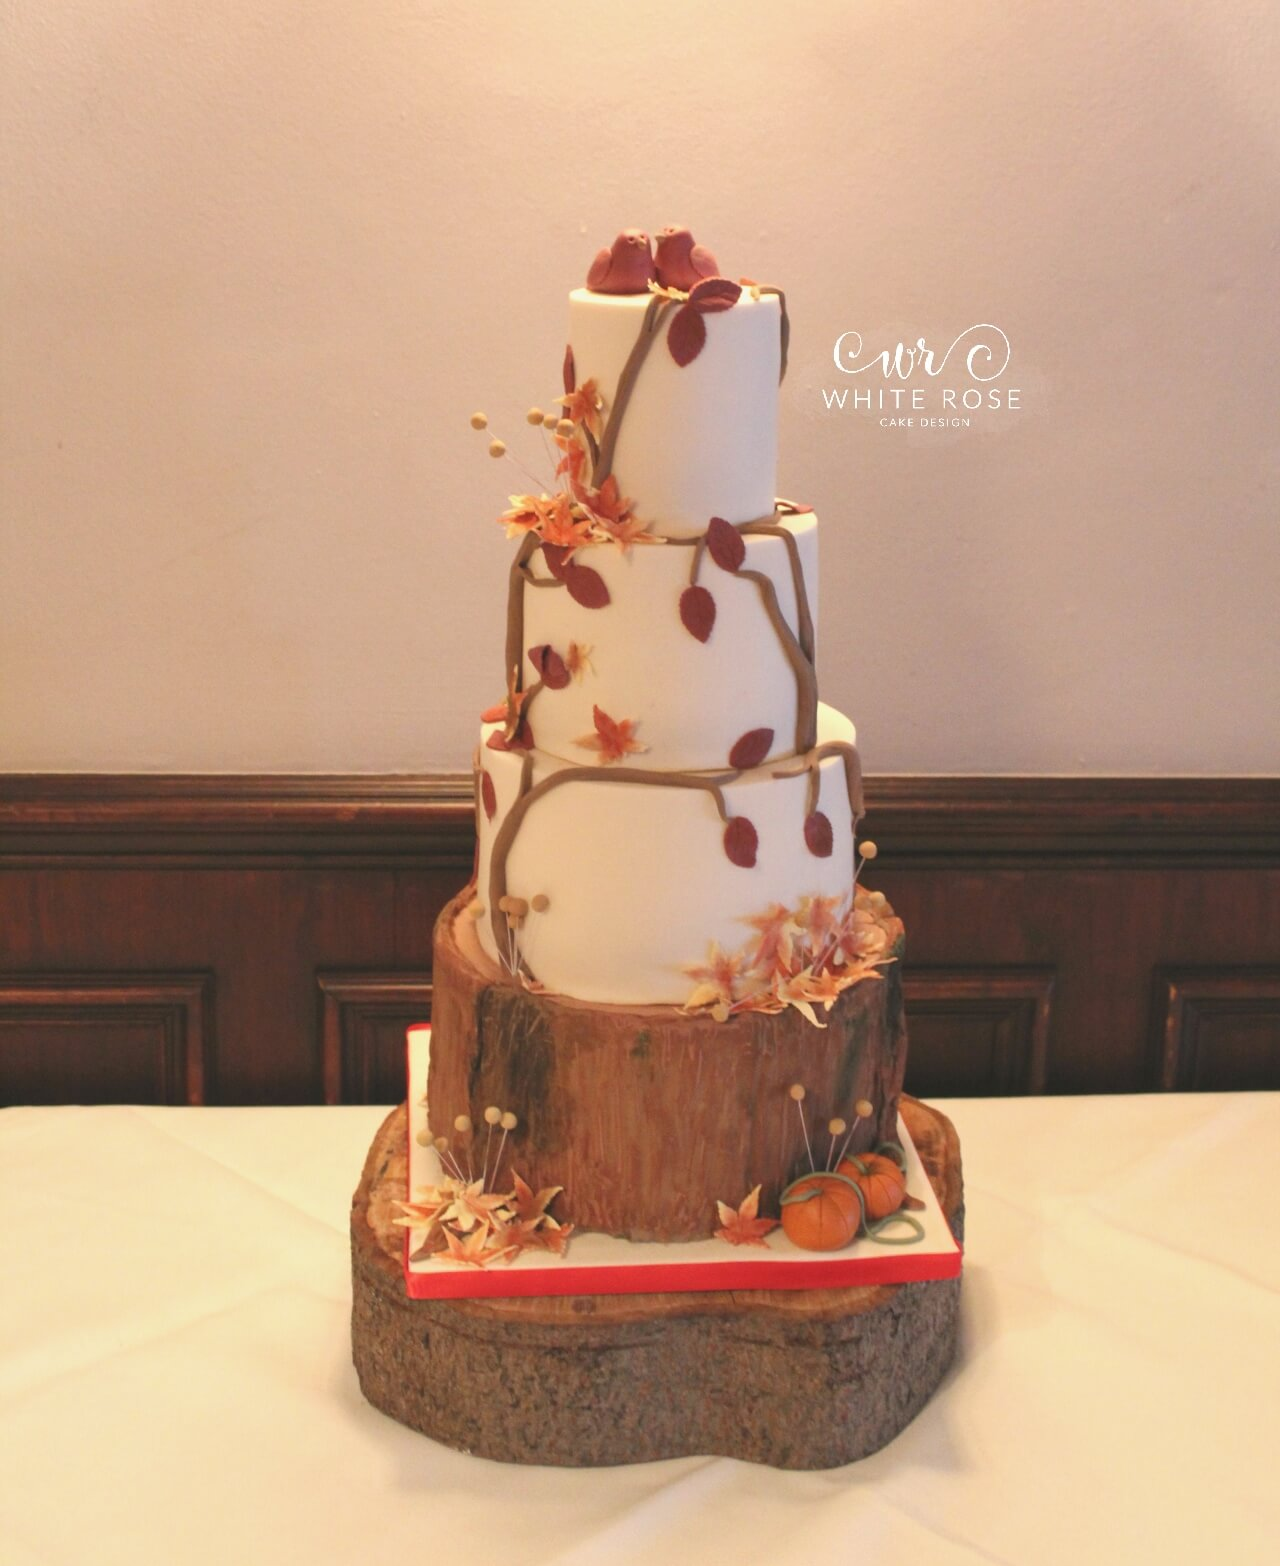 Autumnal Wedding Cake at Pennine Manor Hotel by White Rose Cake Design Wedding Cakes in West Yorkshire Holmfirth Huddersfield